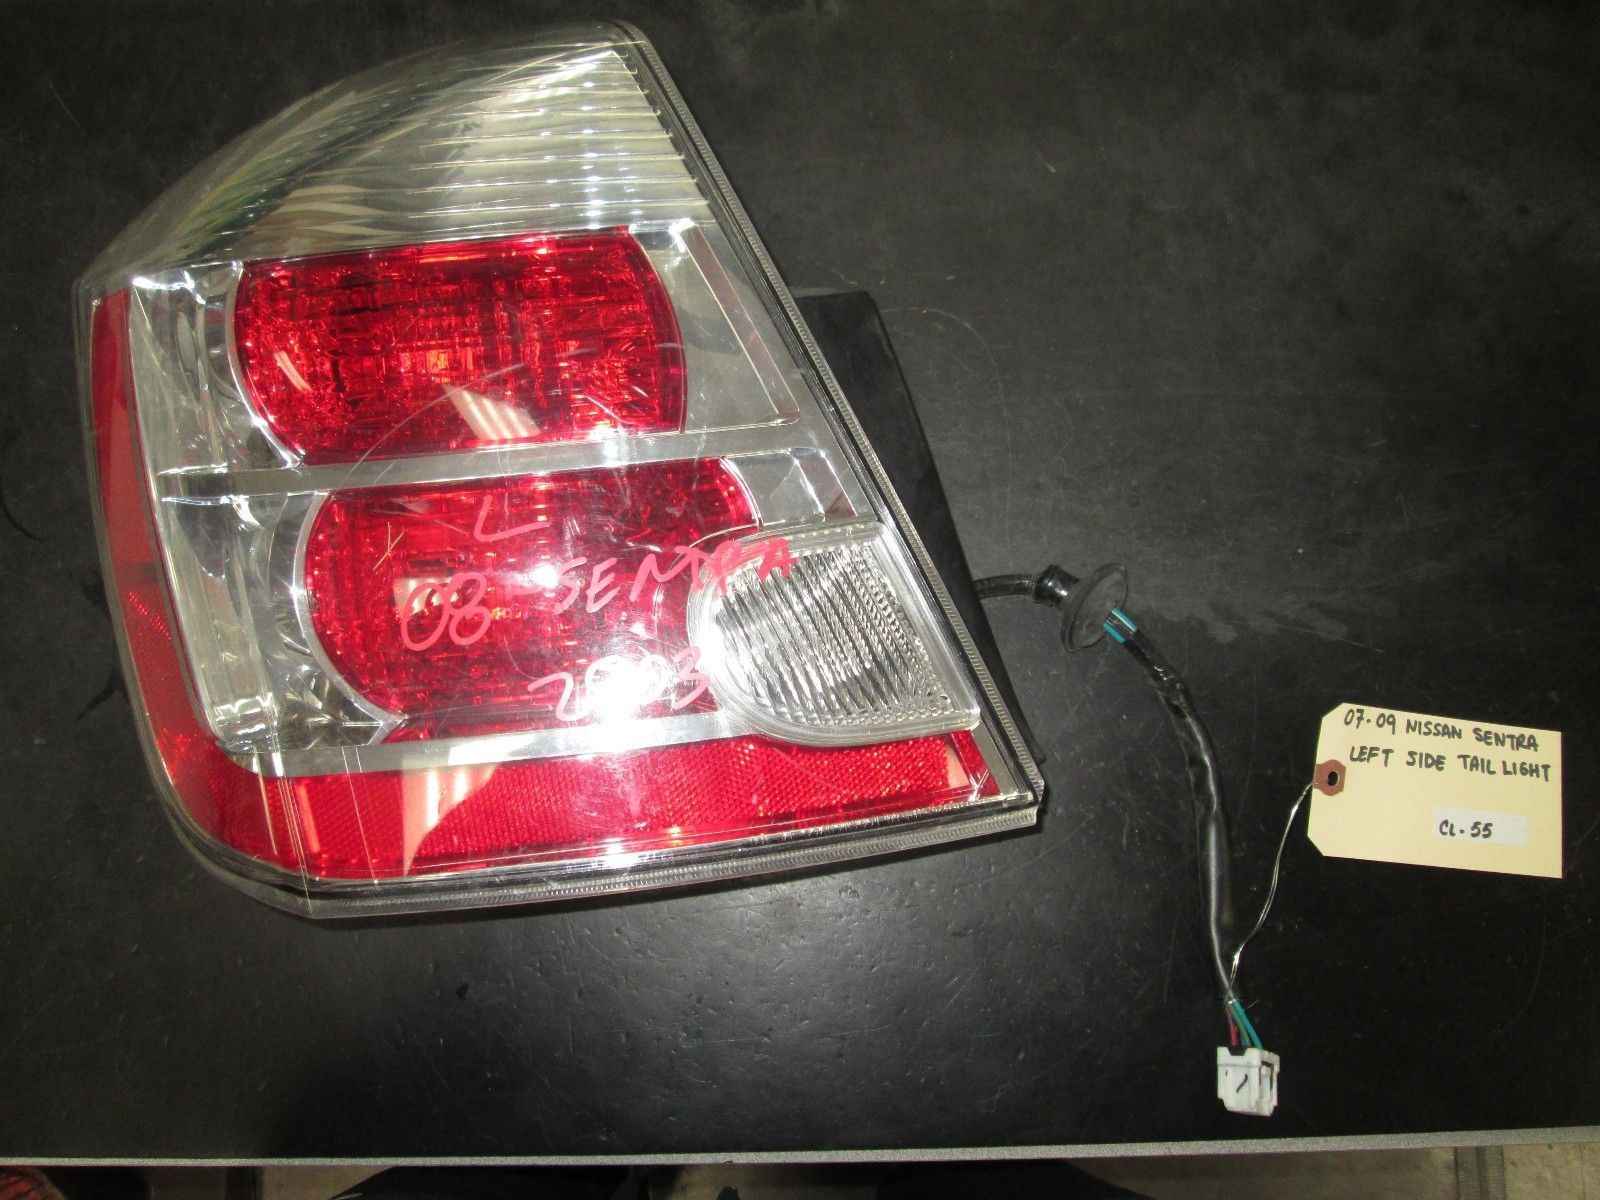 Primary image for 07 08 09 NISSAN SENTRA LEFT SIDE TAIL LIGHT